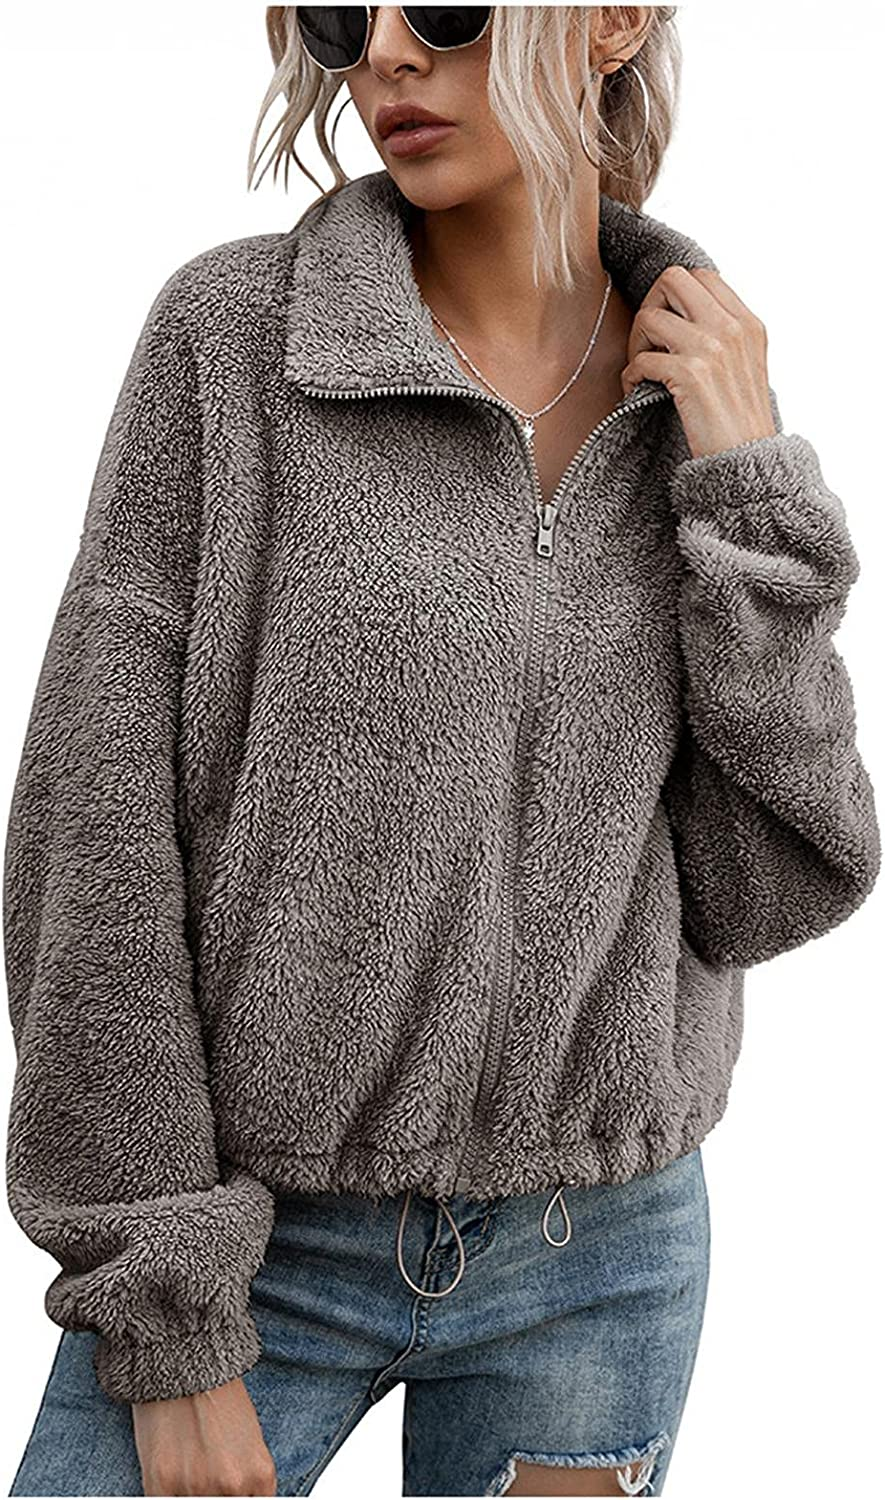 Womens Double-Sided Fleece Jacket Plush S Fashion Surprise price Ladies Max 85% OFF Blouse